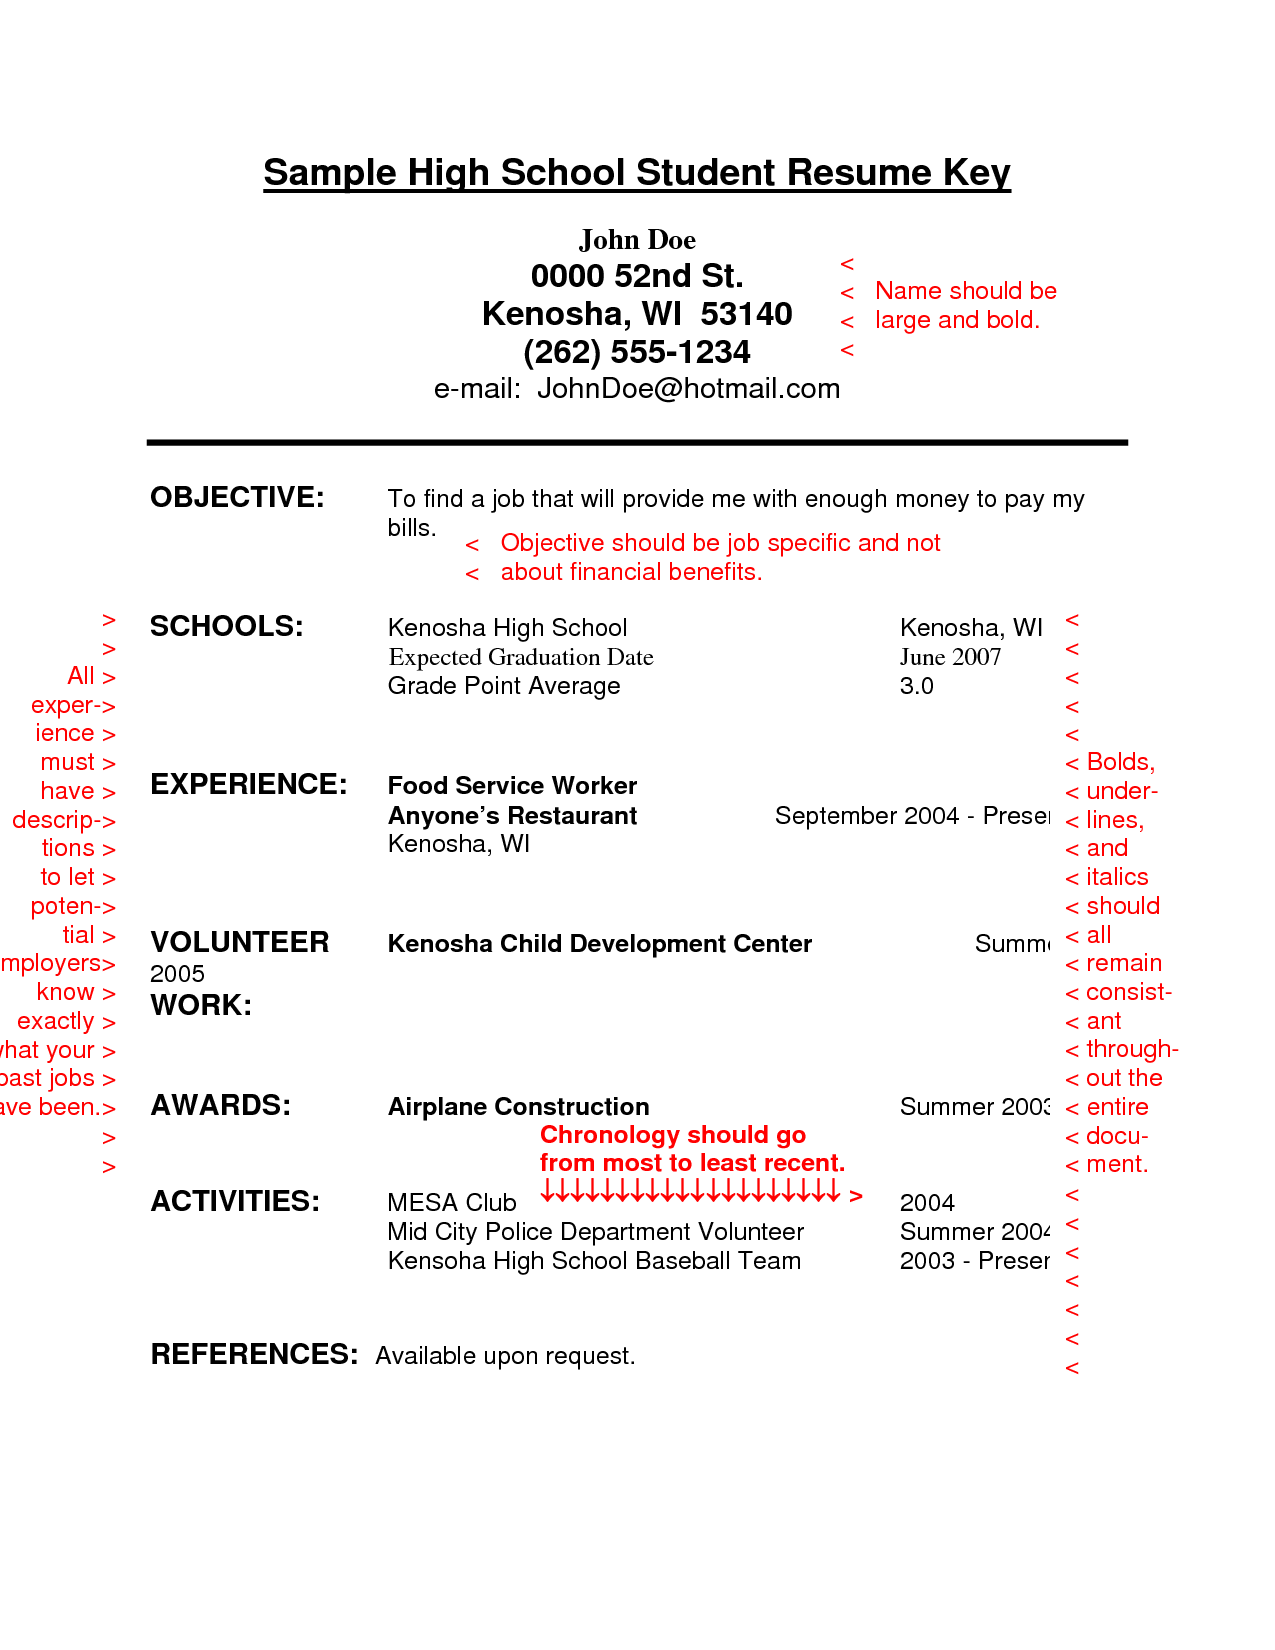 Resume Builder For High School Students High School Student Resume Example Resume Template Builder